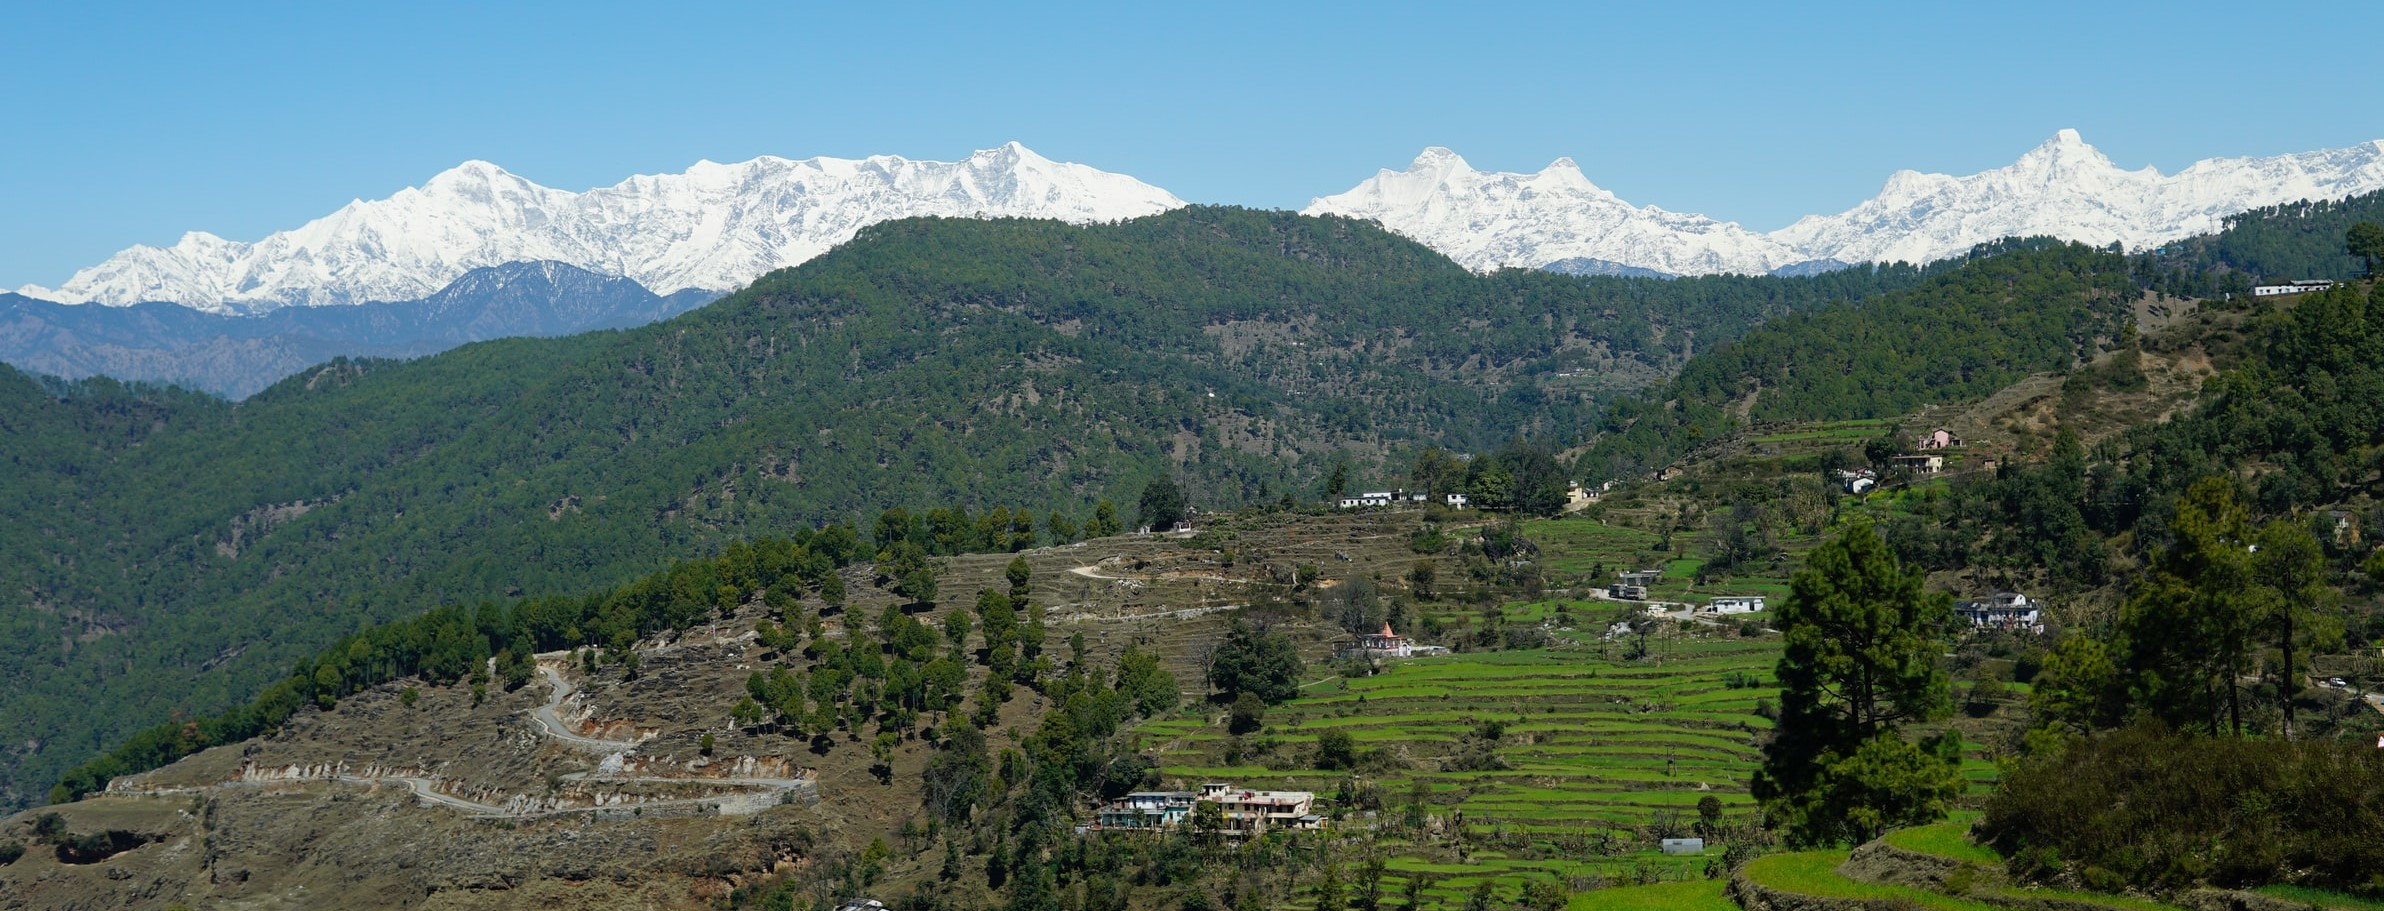 View of Snow Clad Mountains And Green Valley